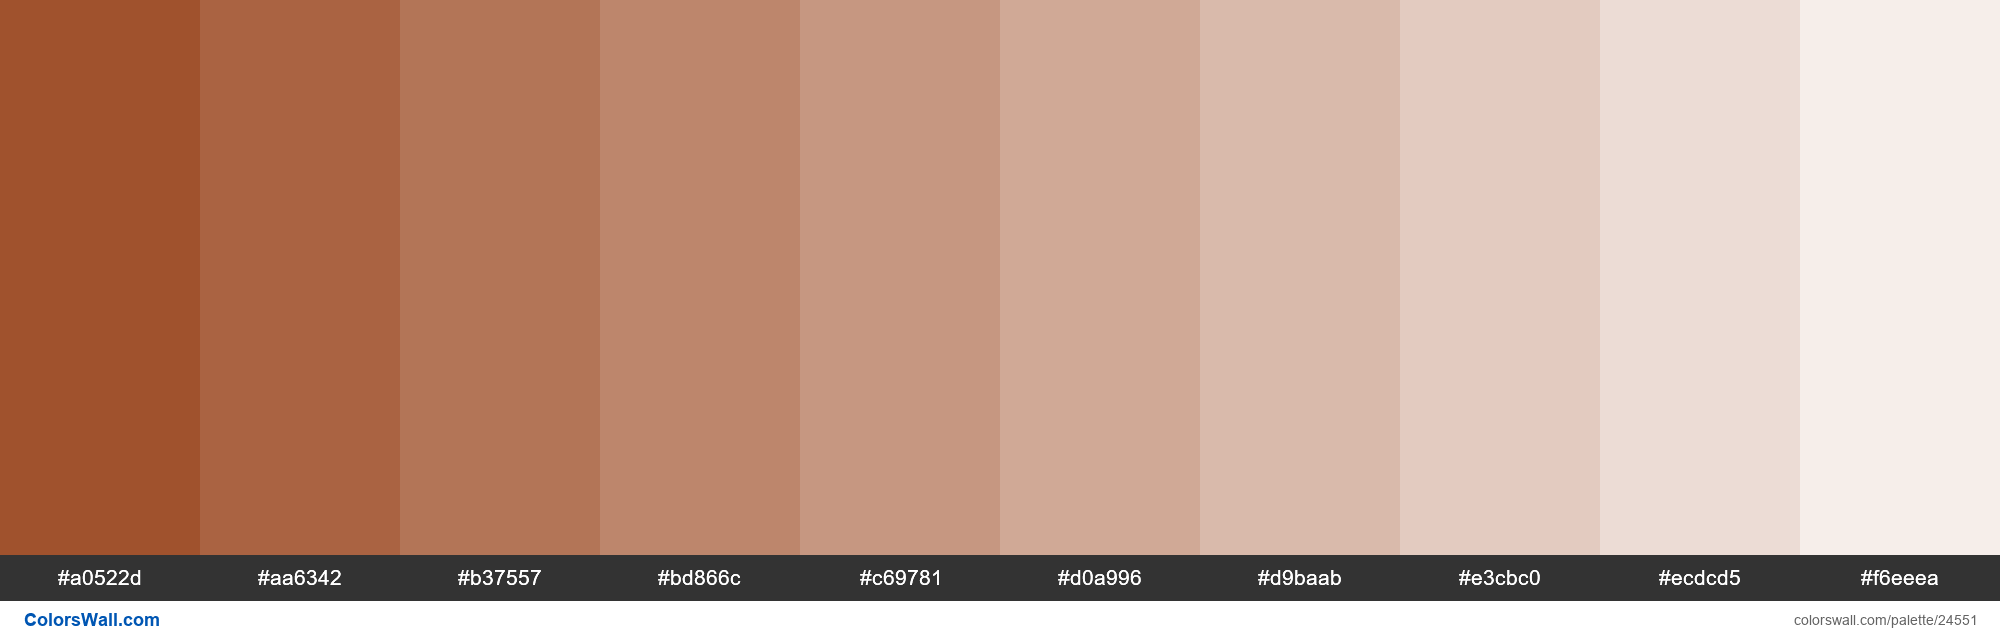 Tints of Sienna #A0522D hex color - #24551